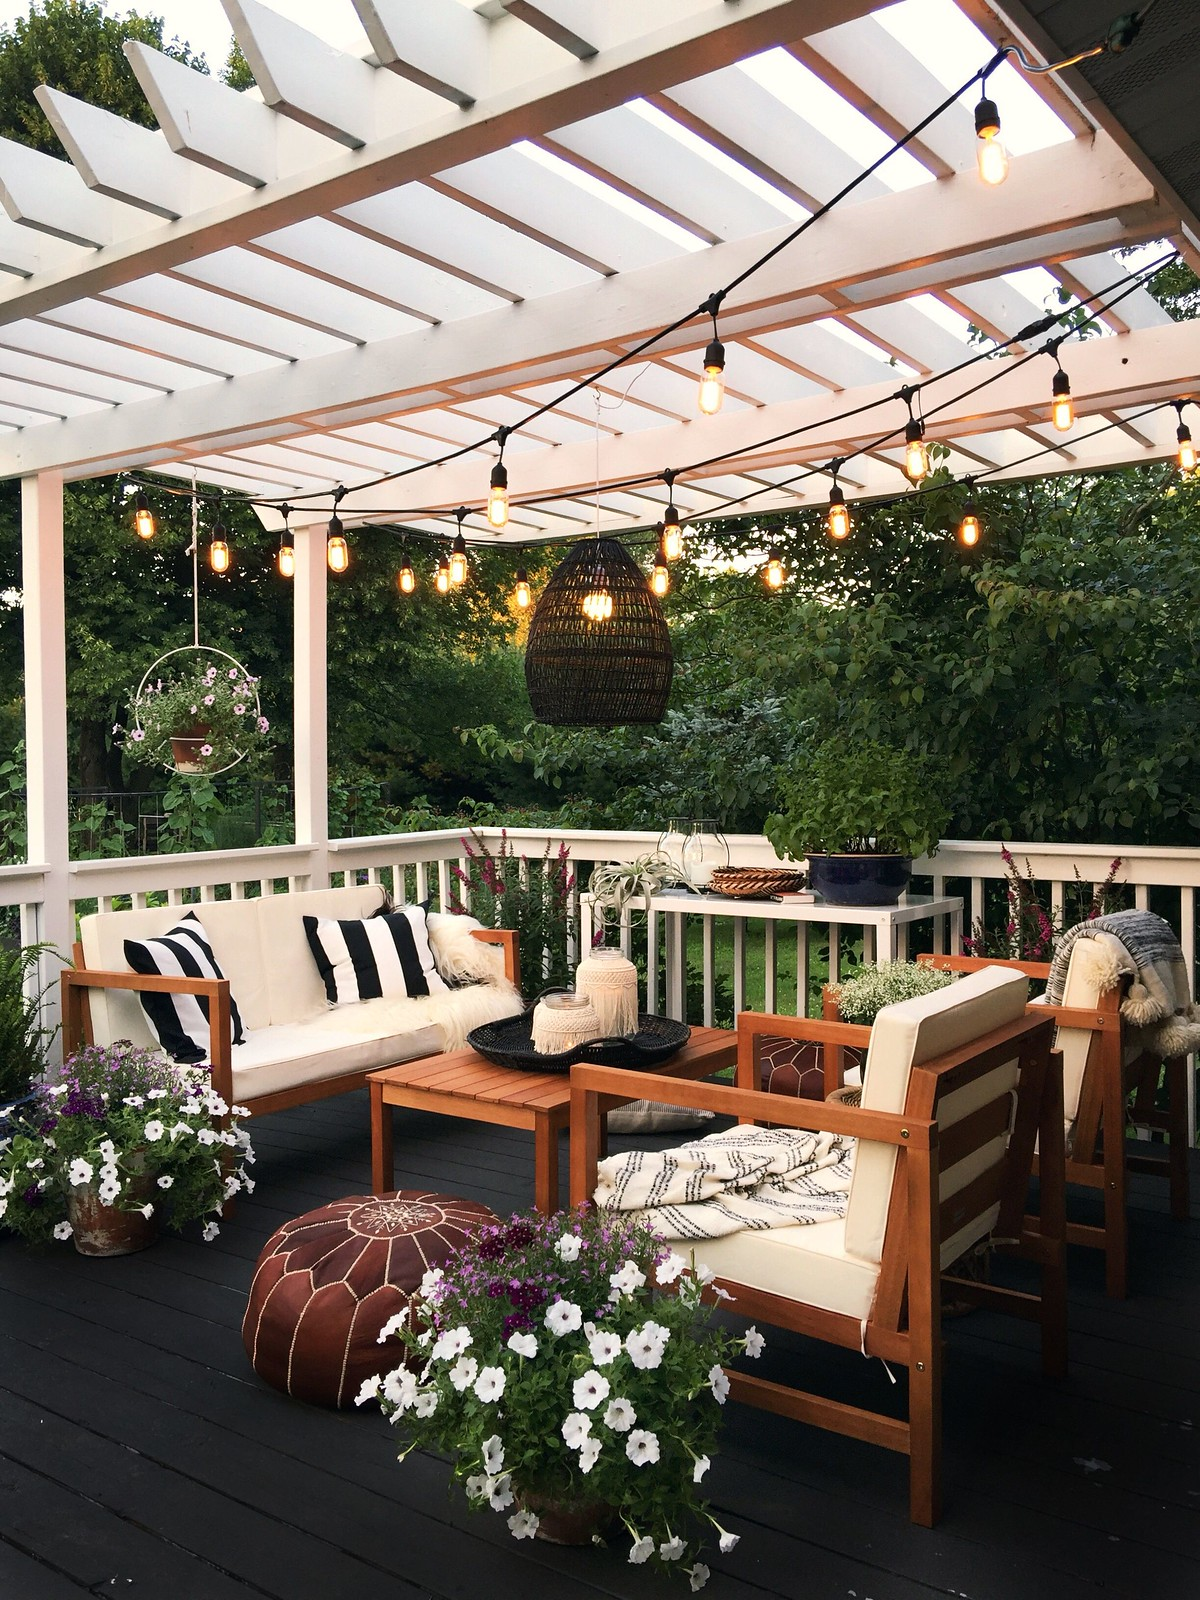 Outdoor Patio Ideas | Outdoor Decor | Outdoor Oasis Deck | Super Chic Backyard Ideas | Outdoor Space Inspiration | Dream Backyard | 5 Tips for Creating a Cozy Outdoor Oasis at Your Home | Backyards that Inspire Me | Terrace | Porch | Patio Renovation | Patio Remodel | Best Decorated Decks on Pinterest | Boho Patio Inspiration | Outdoor Furniture Inspiration | Modern Neutral Outdoor Decor | | Deck with Pergola